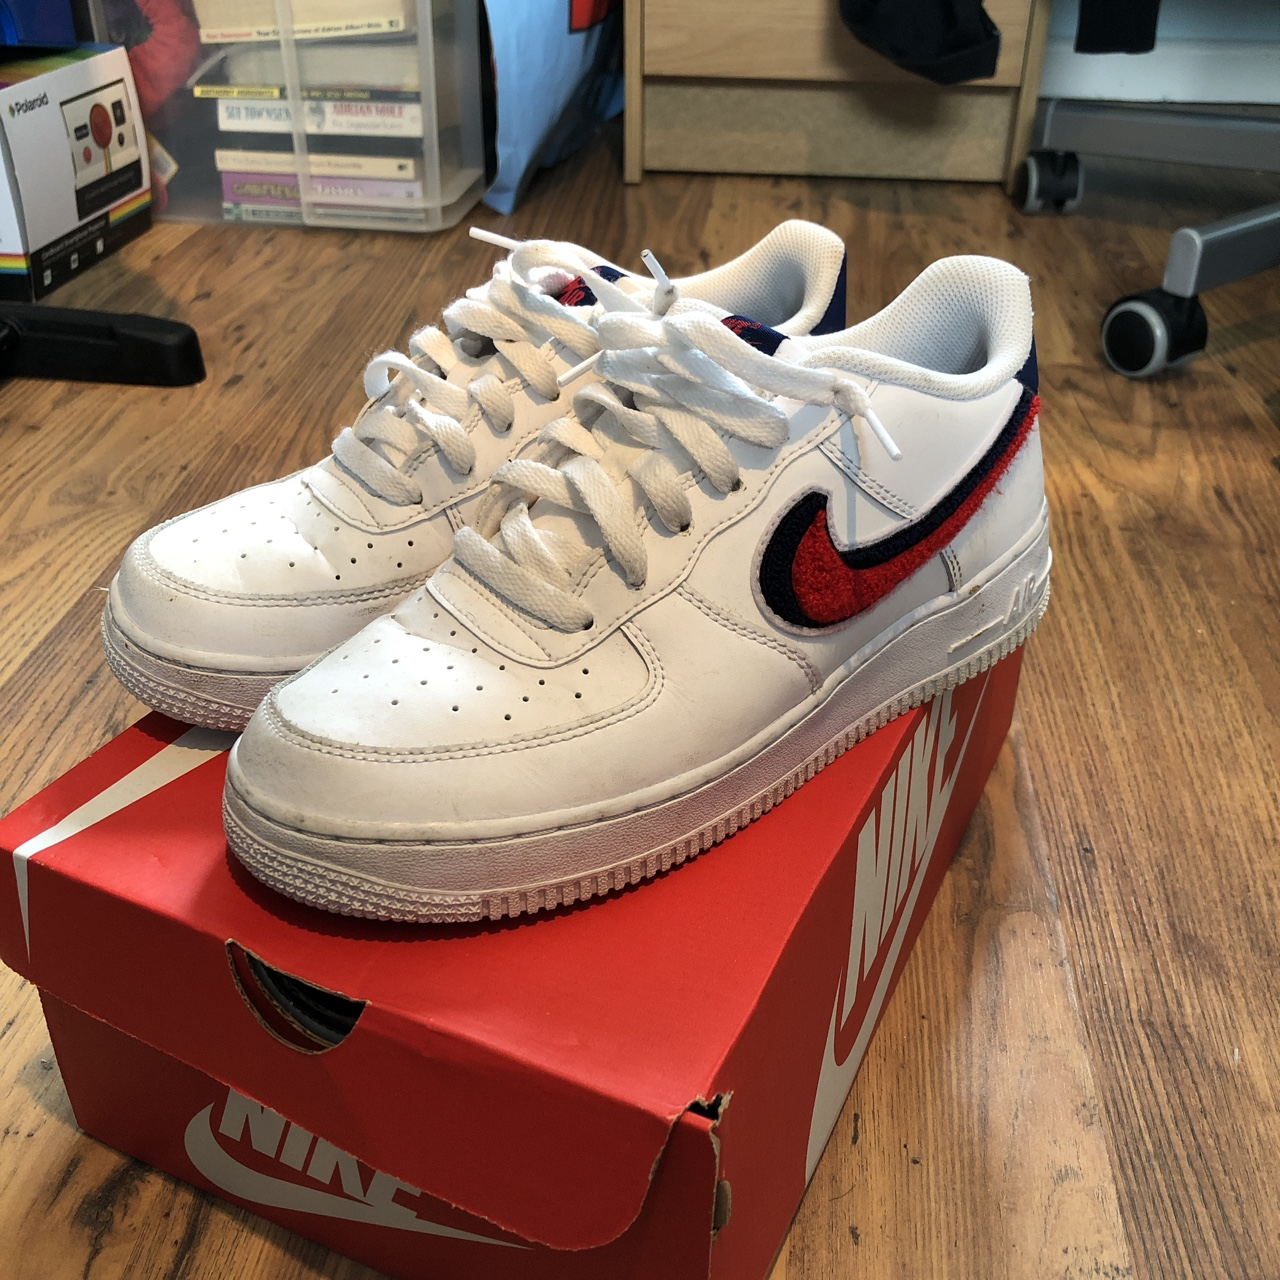 Nike Air Force 1 LV8, bought from shoe